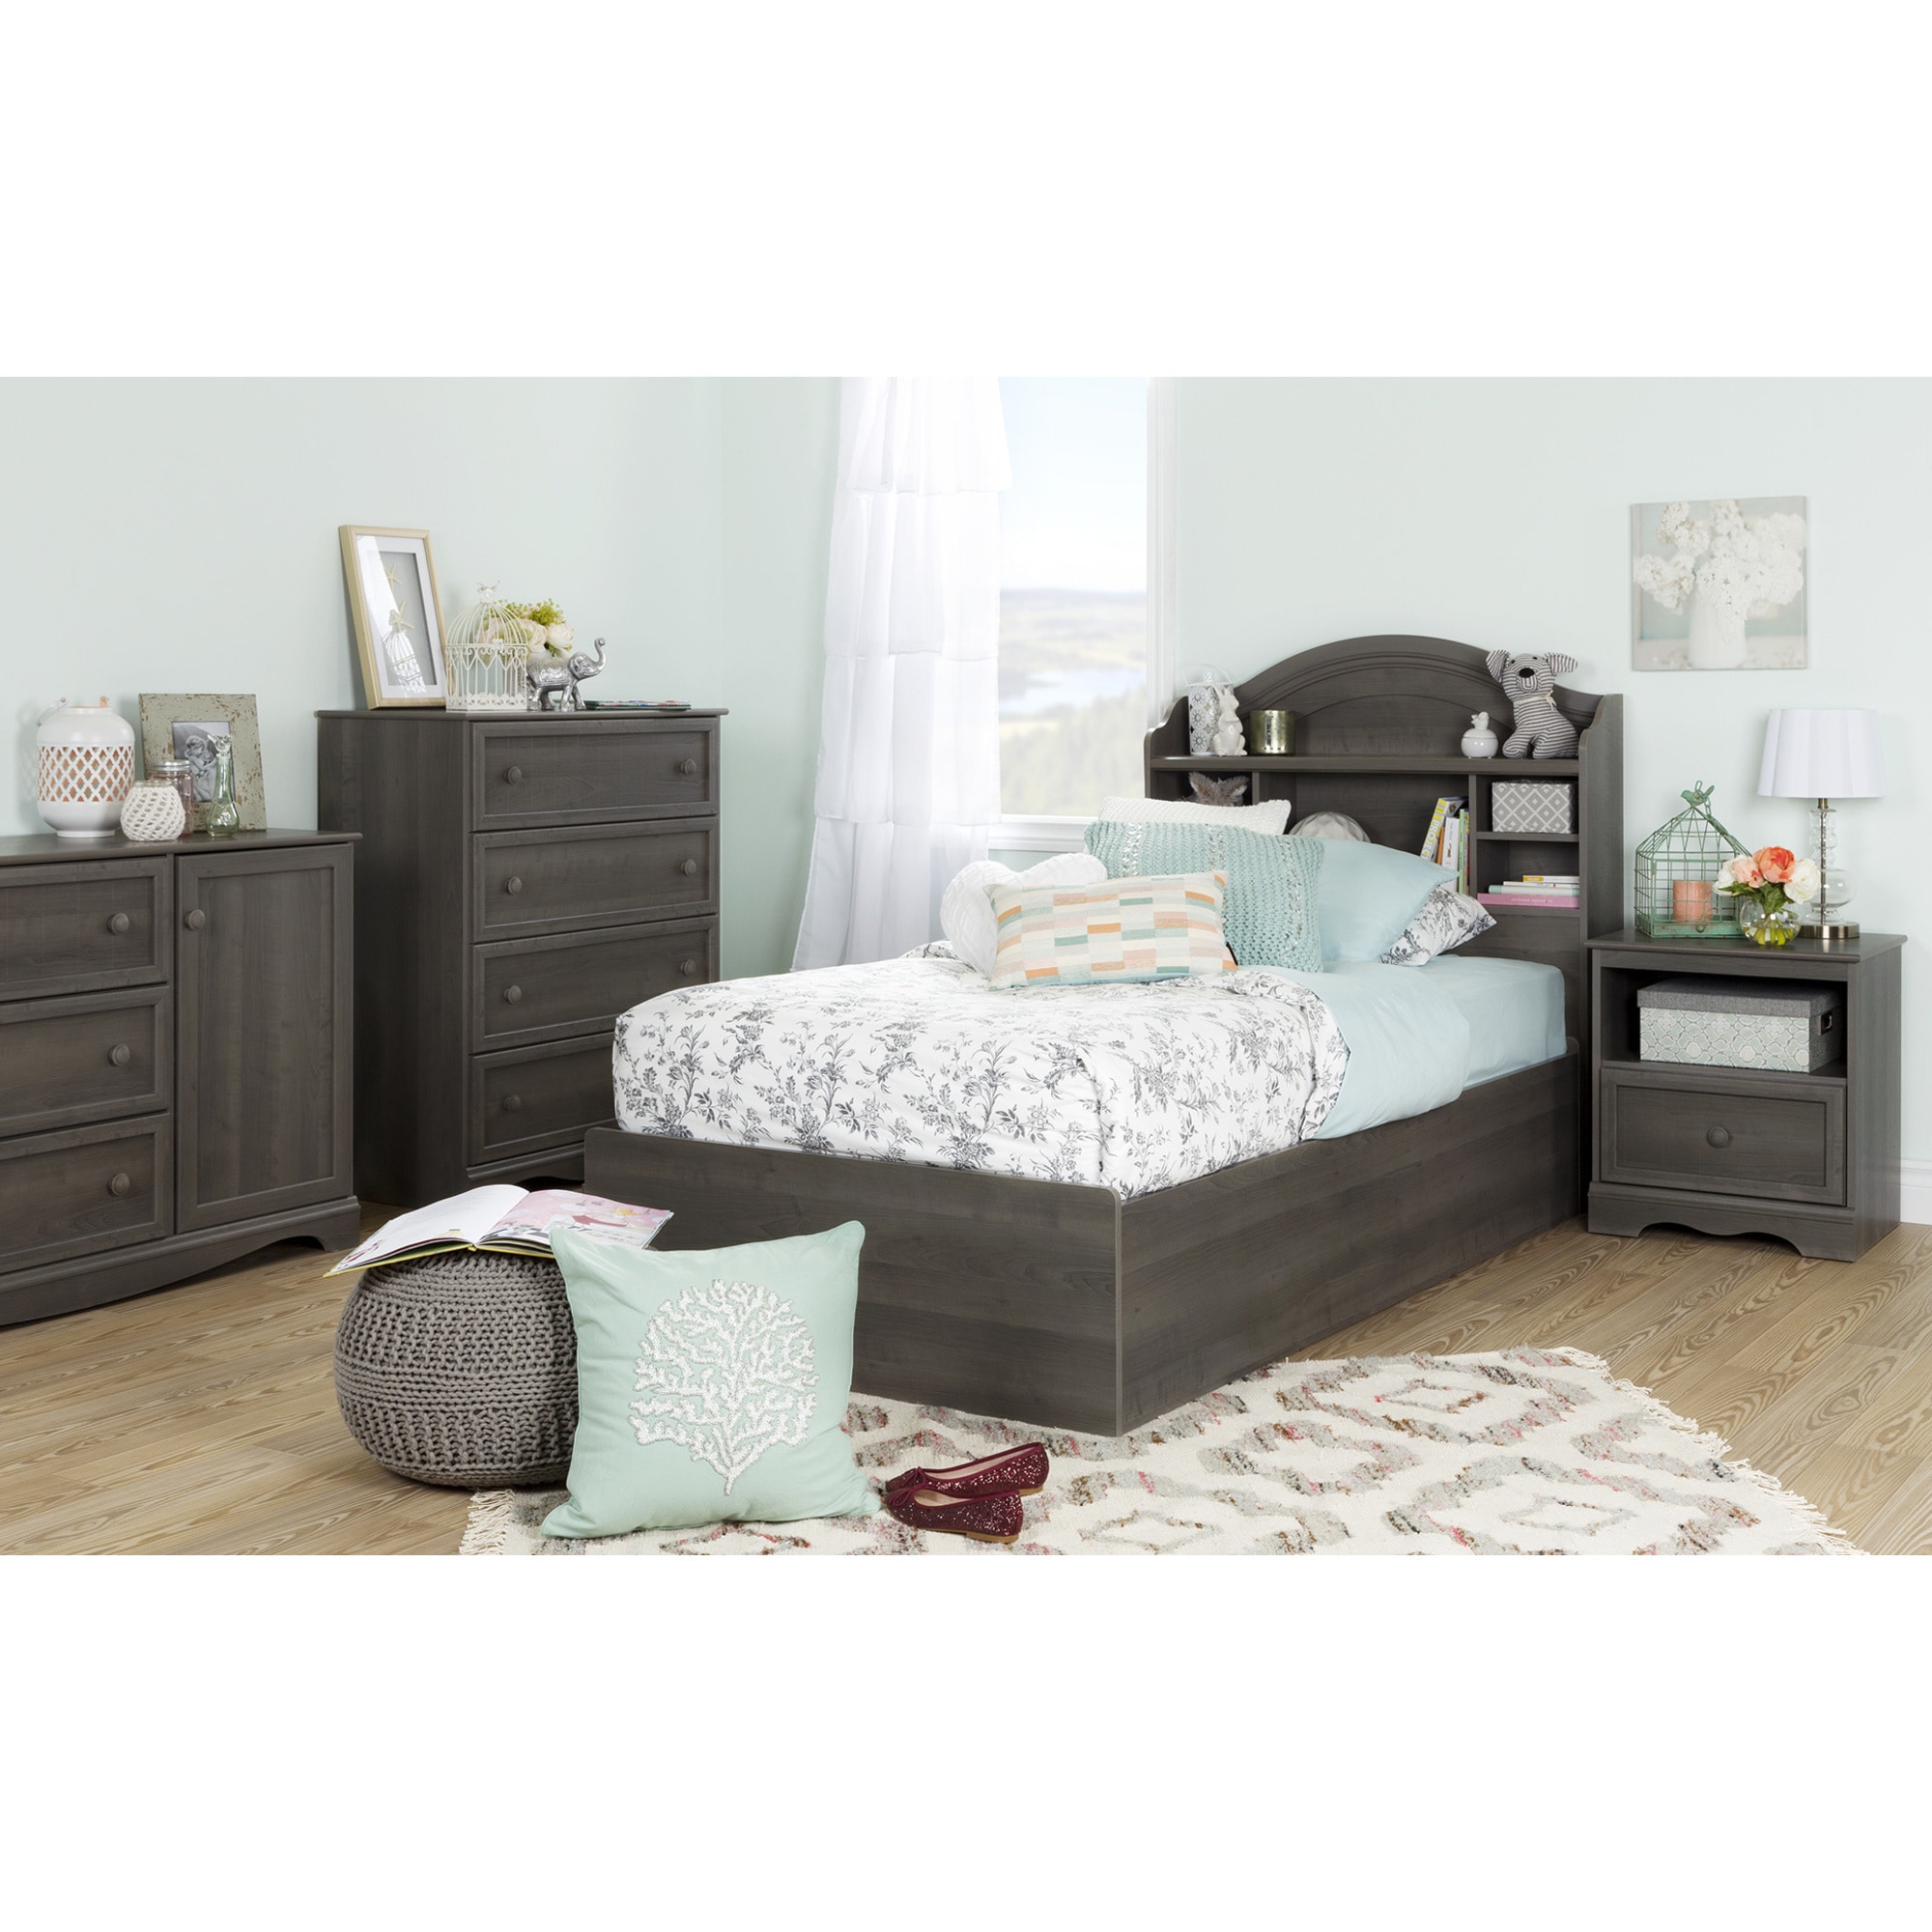 South Shore Savannah Twin Bookcase Headboard  Free Shipping Today